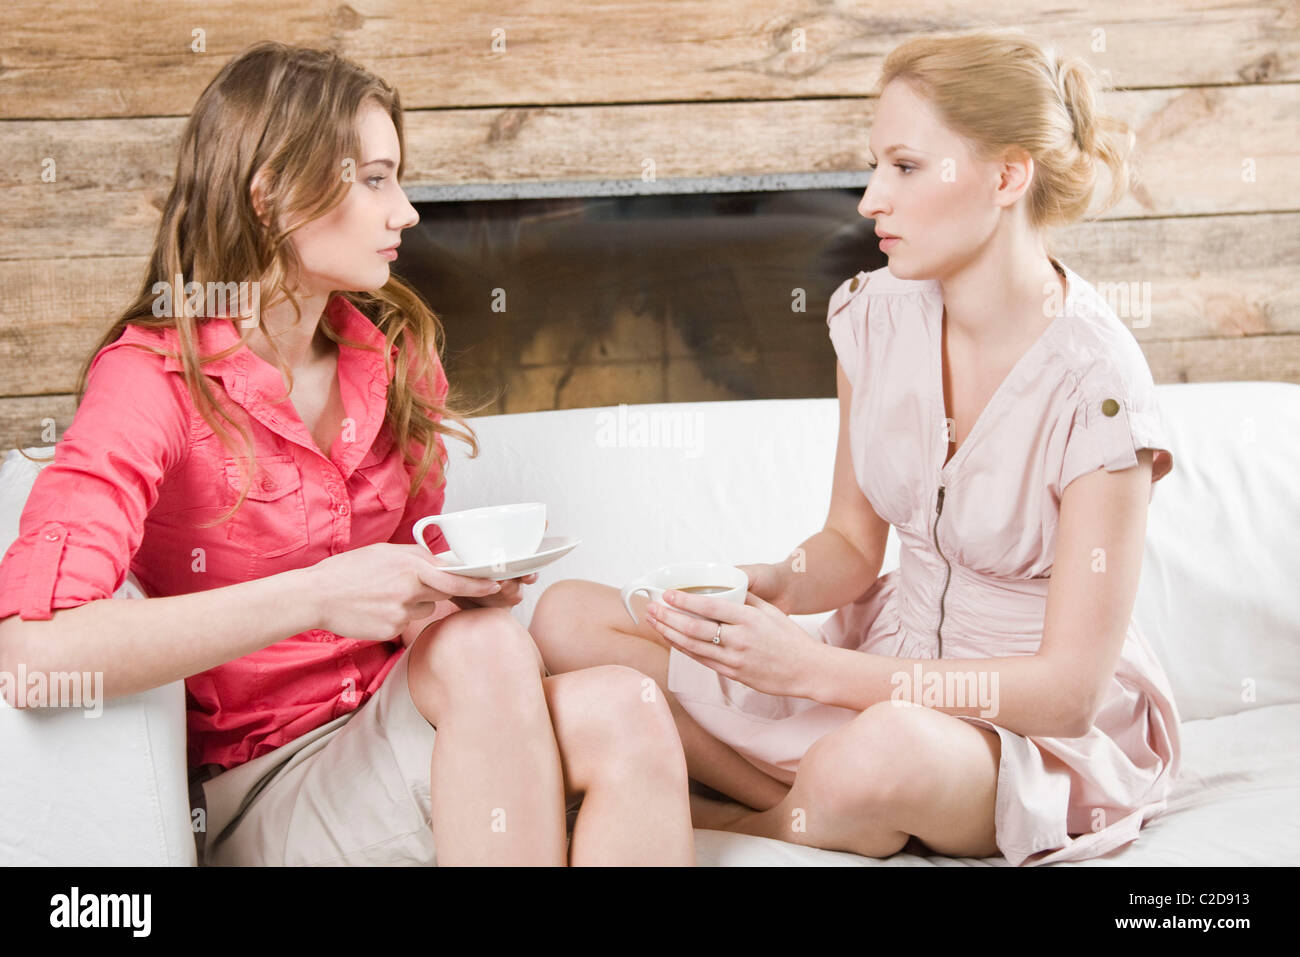 Women having coffee at home - Stock Image